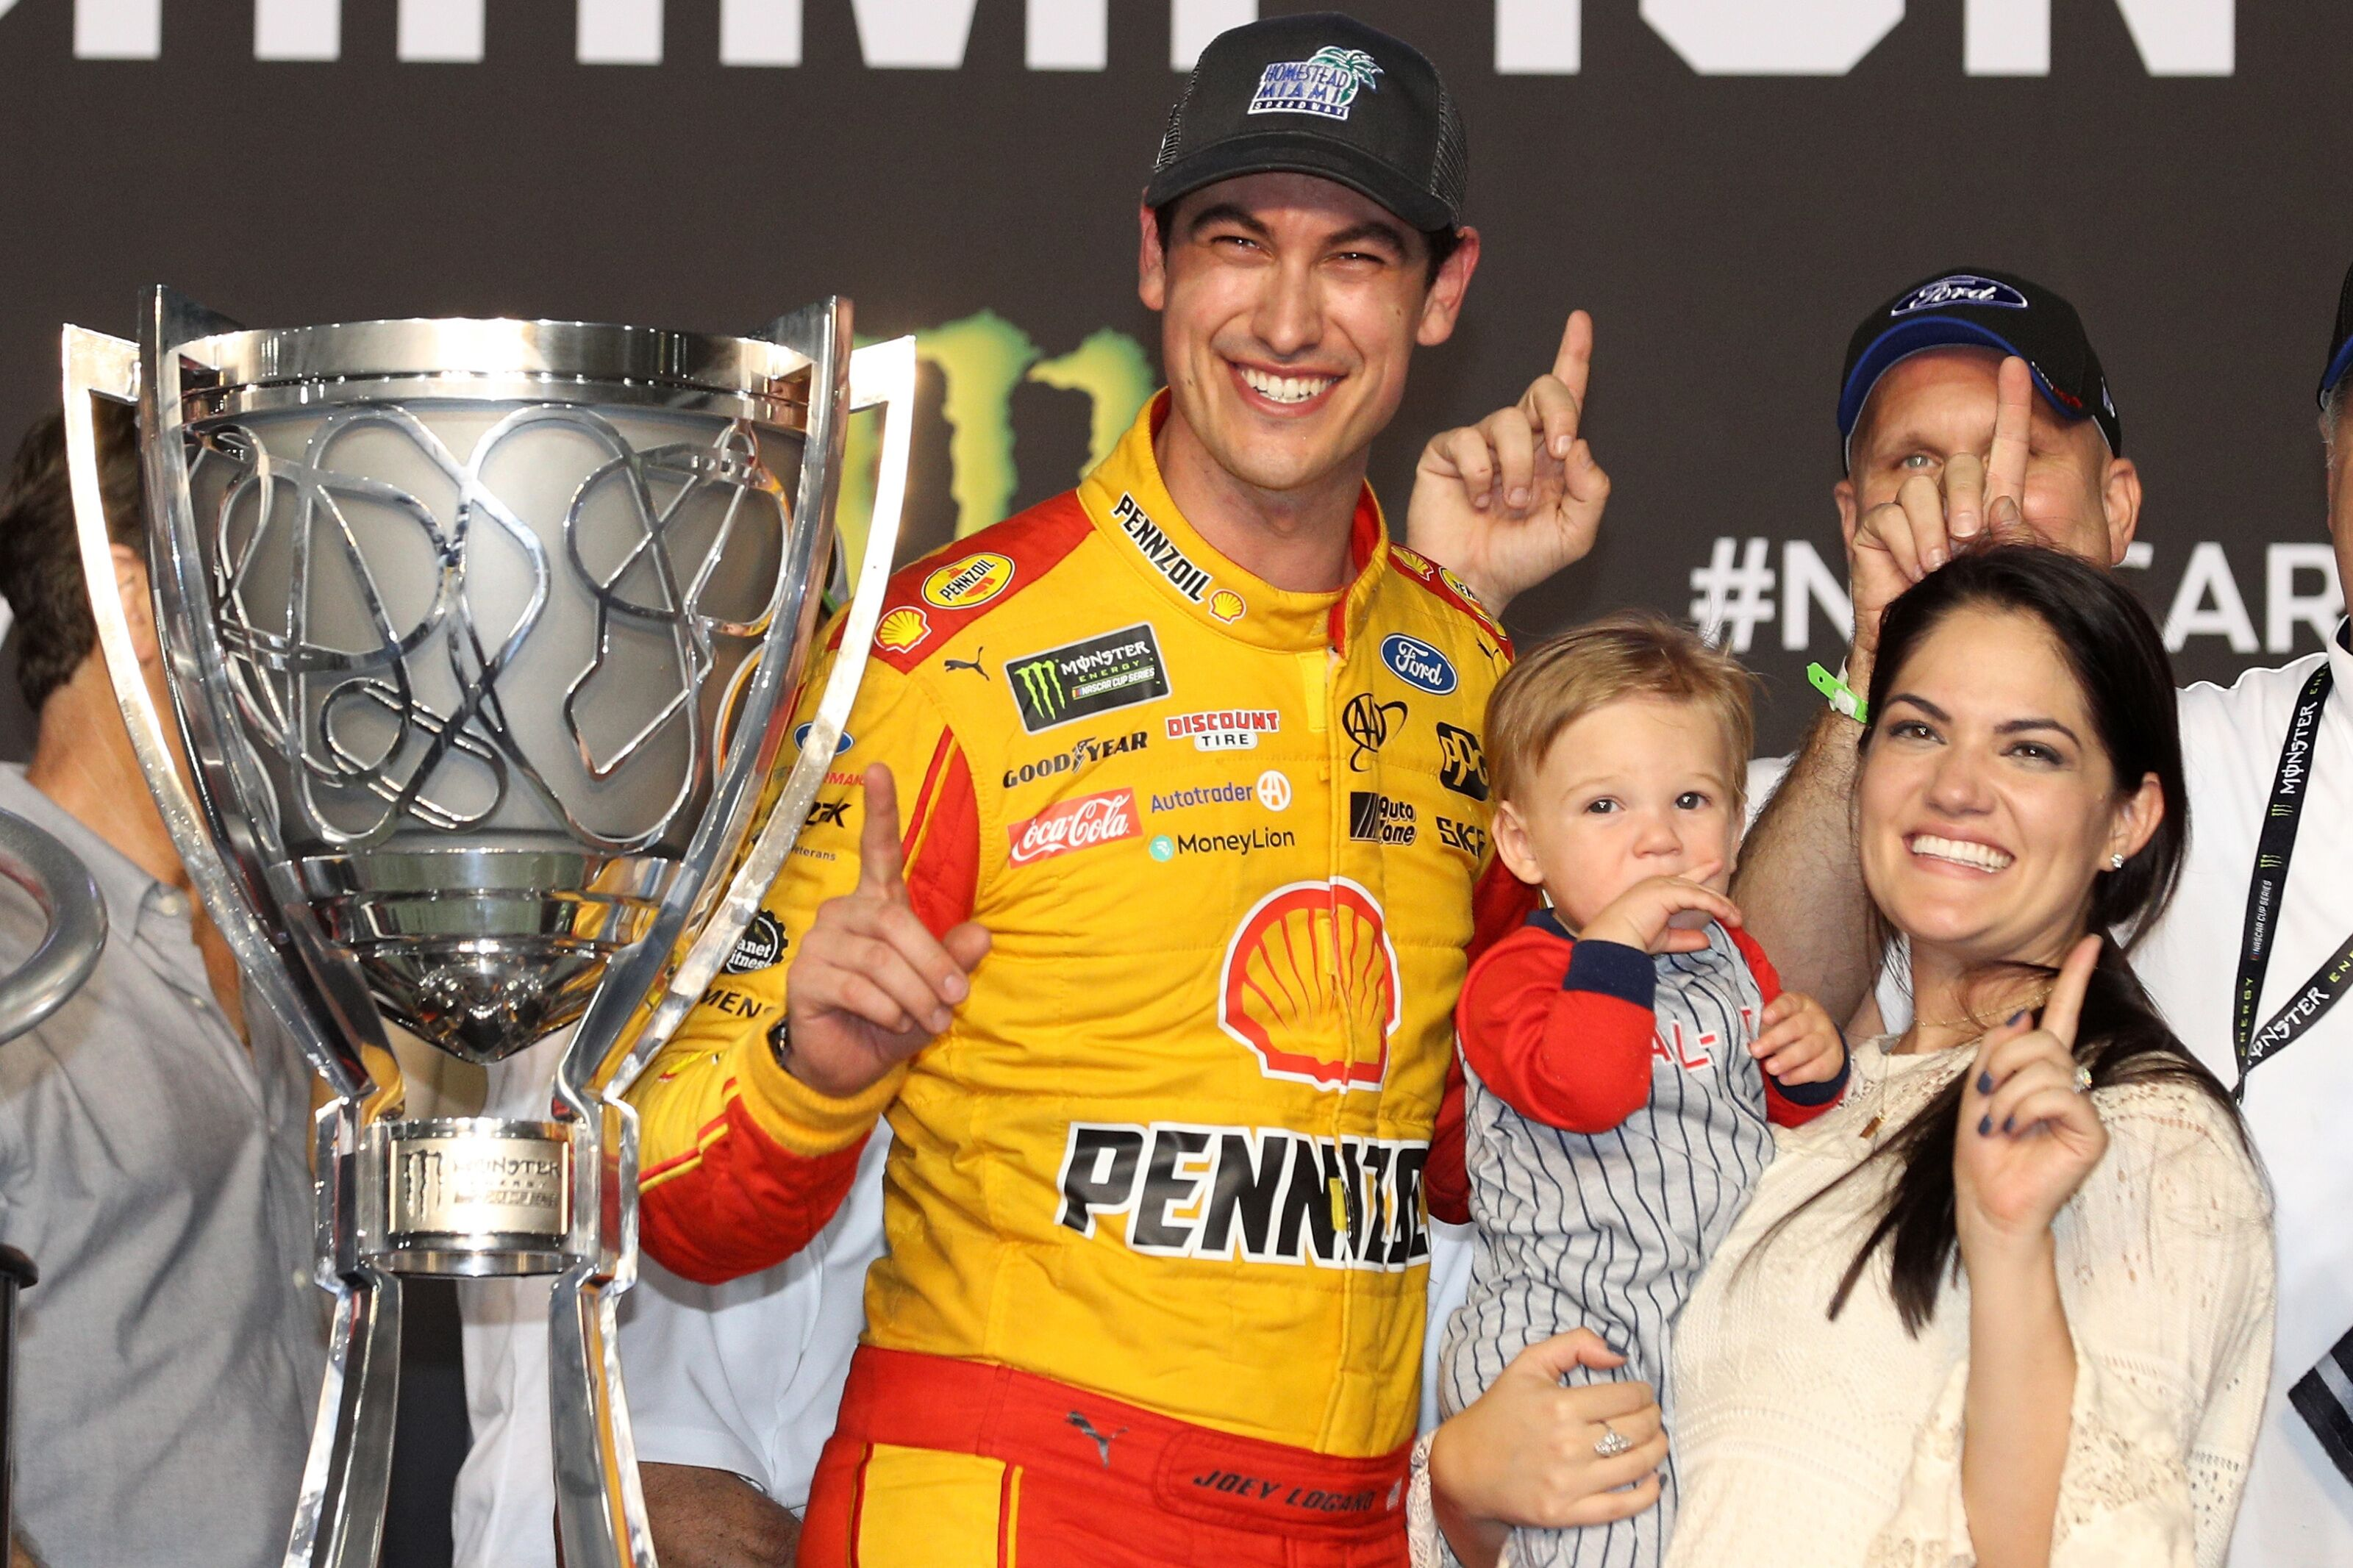 NASCAR: Joey Logano talks Joey Logano Foundation and more in exclusive interview